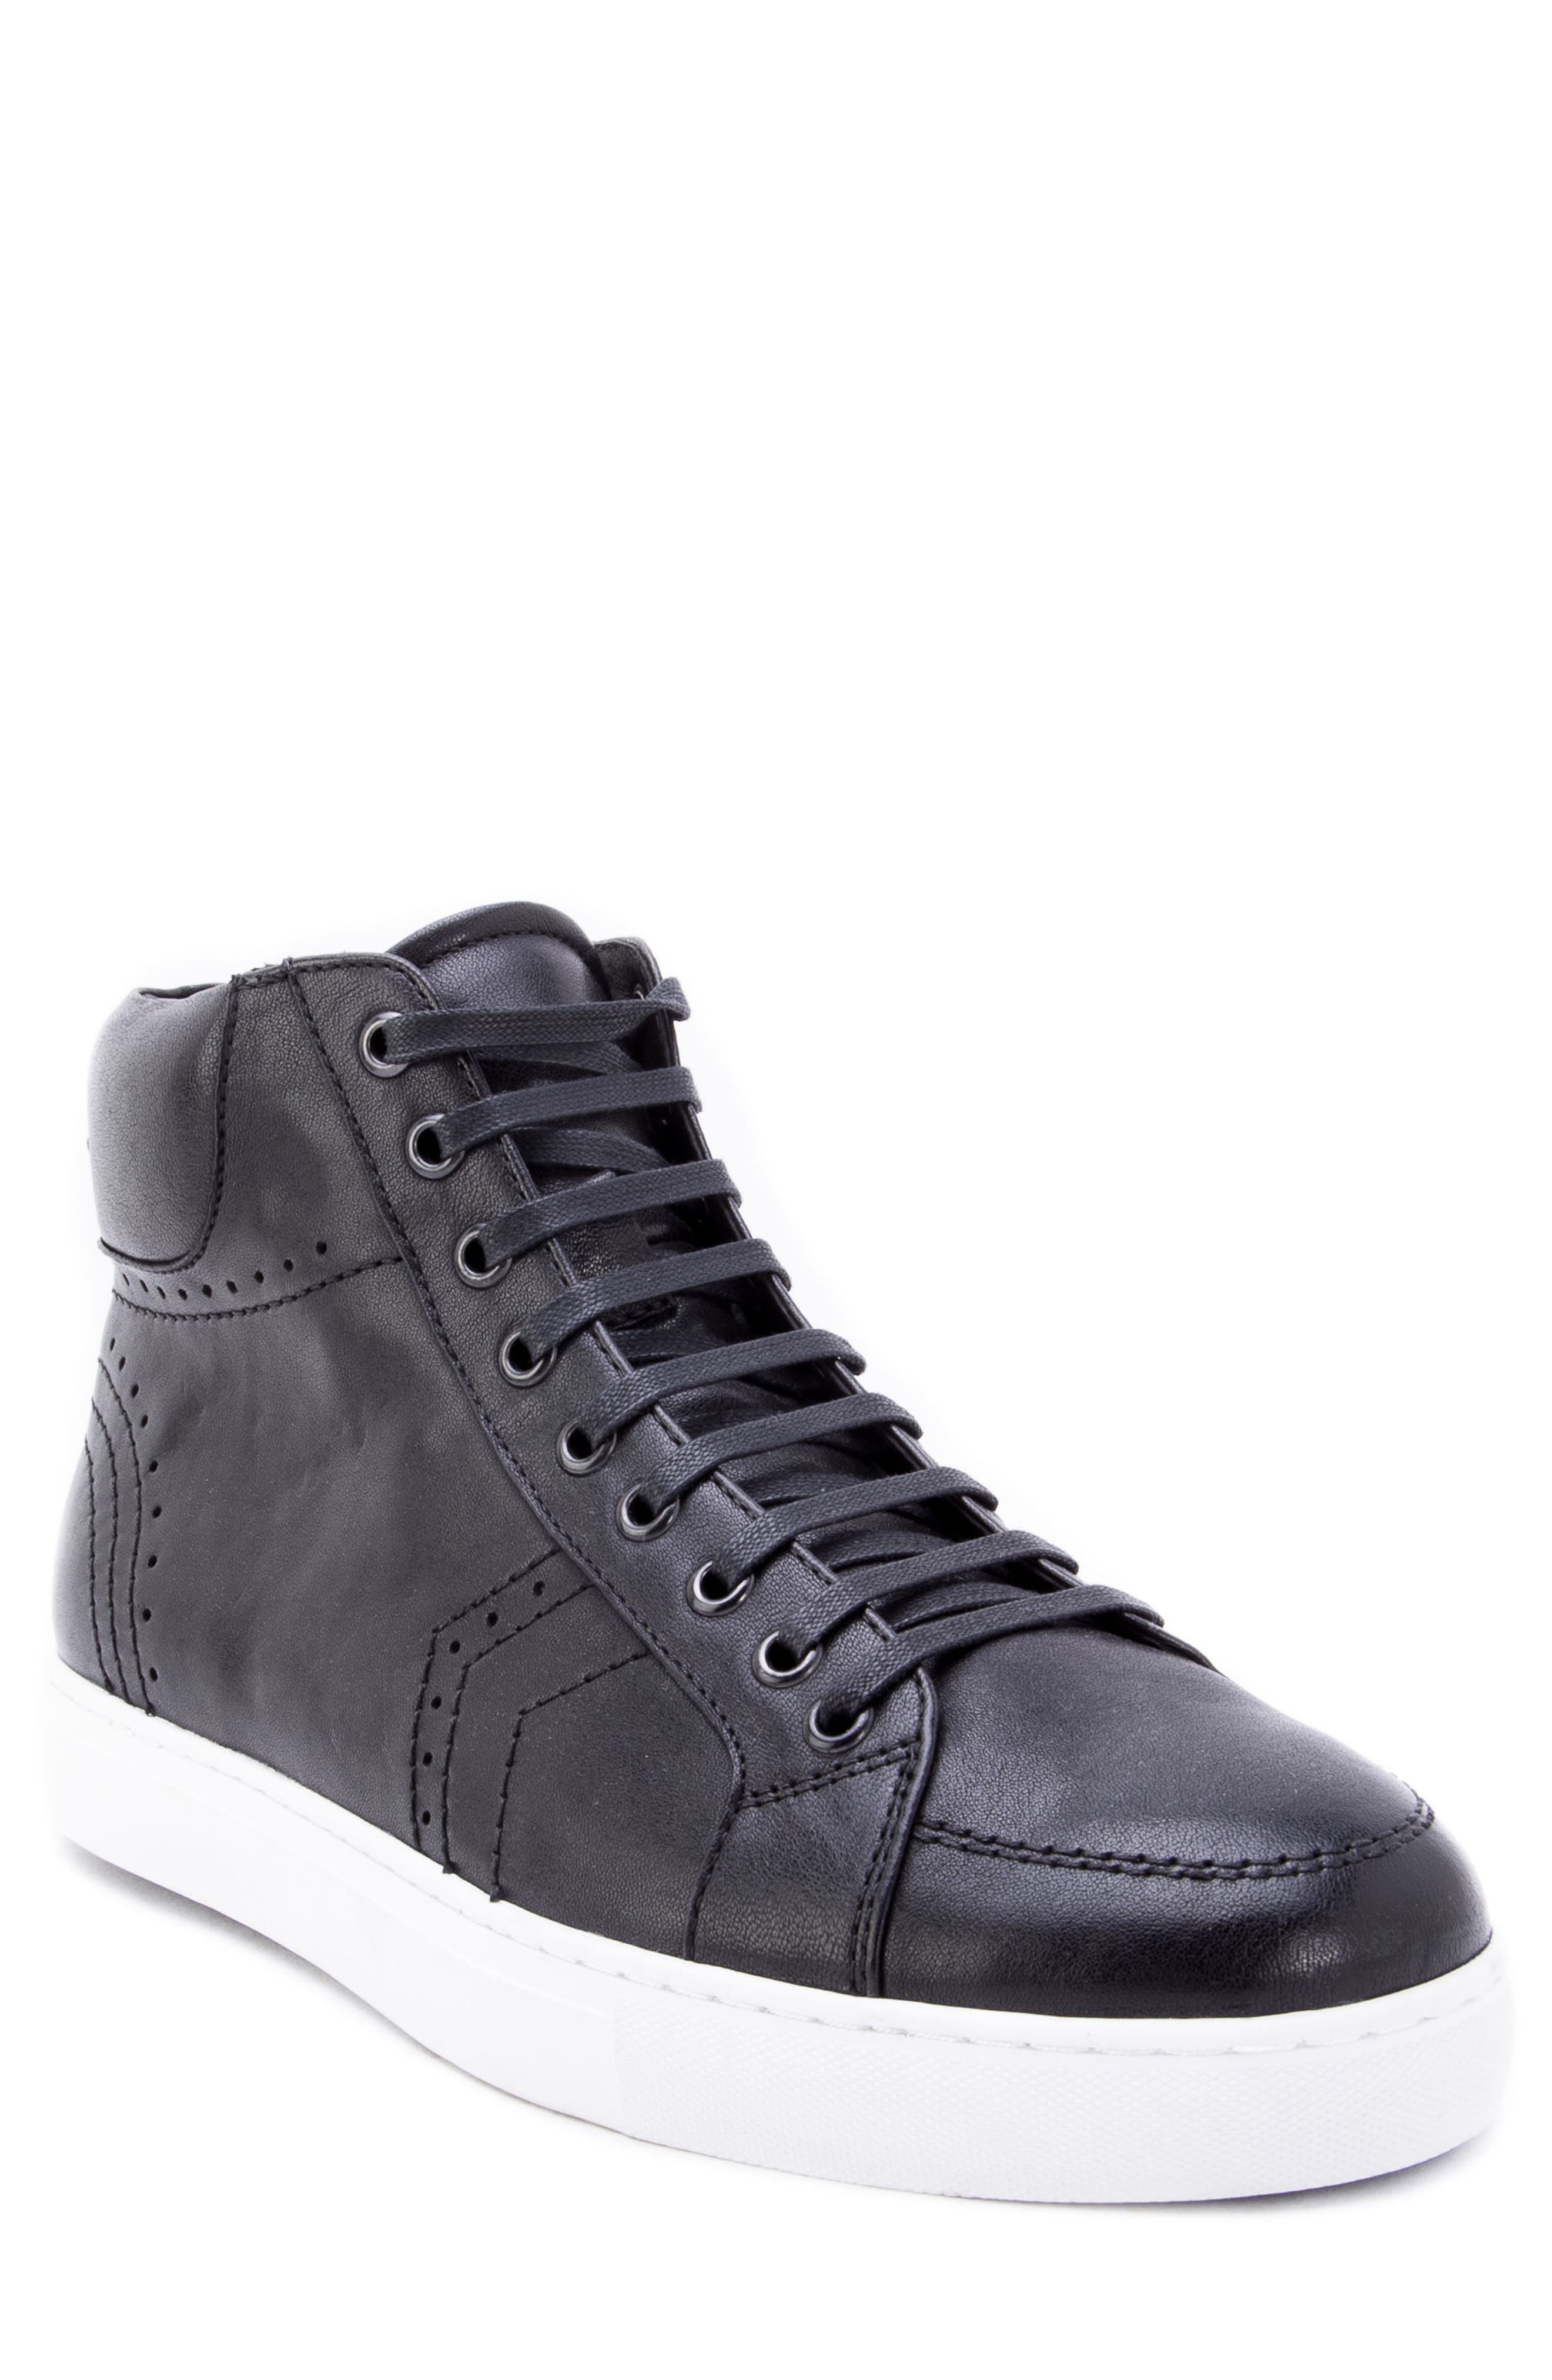 Uglow Perforated High Top Sneaker,                         Main,                         color, BLACK LEATHER